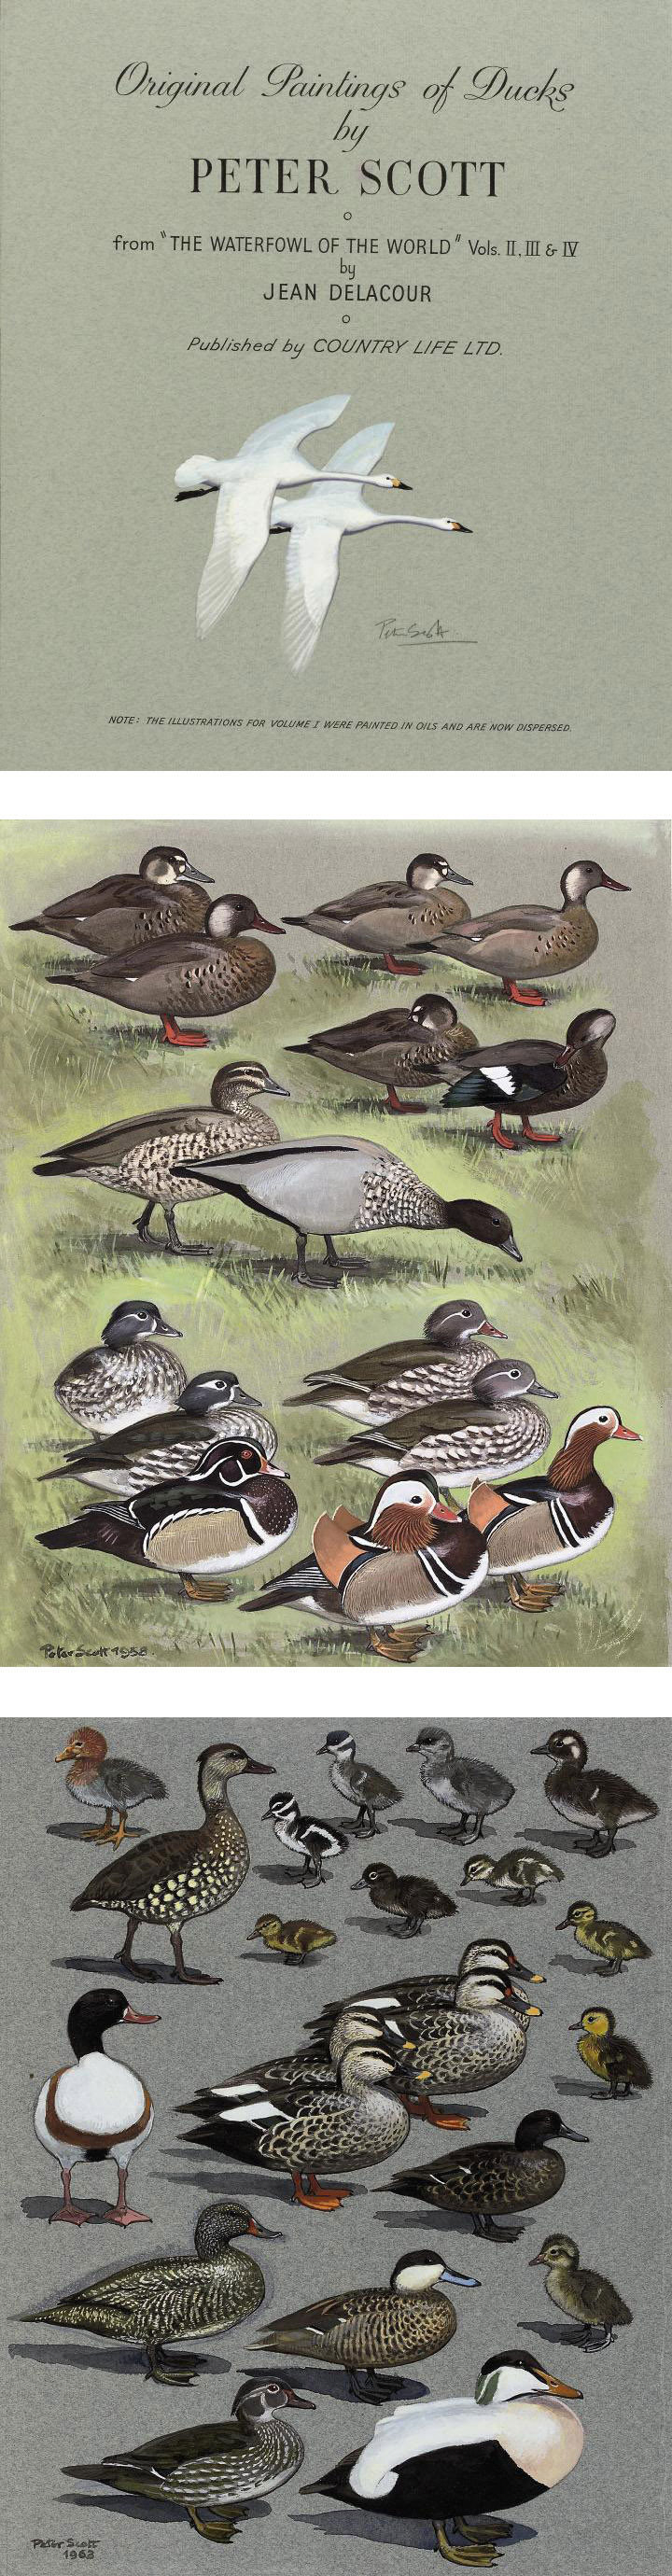 Two albums of twenty-four watercolours each depicting various species of wildfowl for 'Original Paintings of Ducks' by Jean Delacour